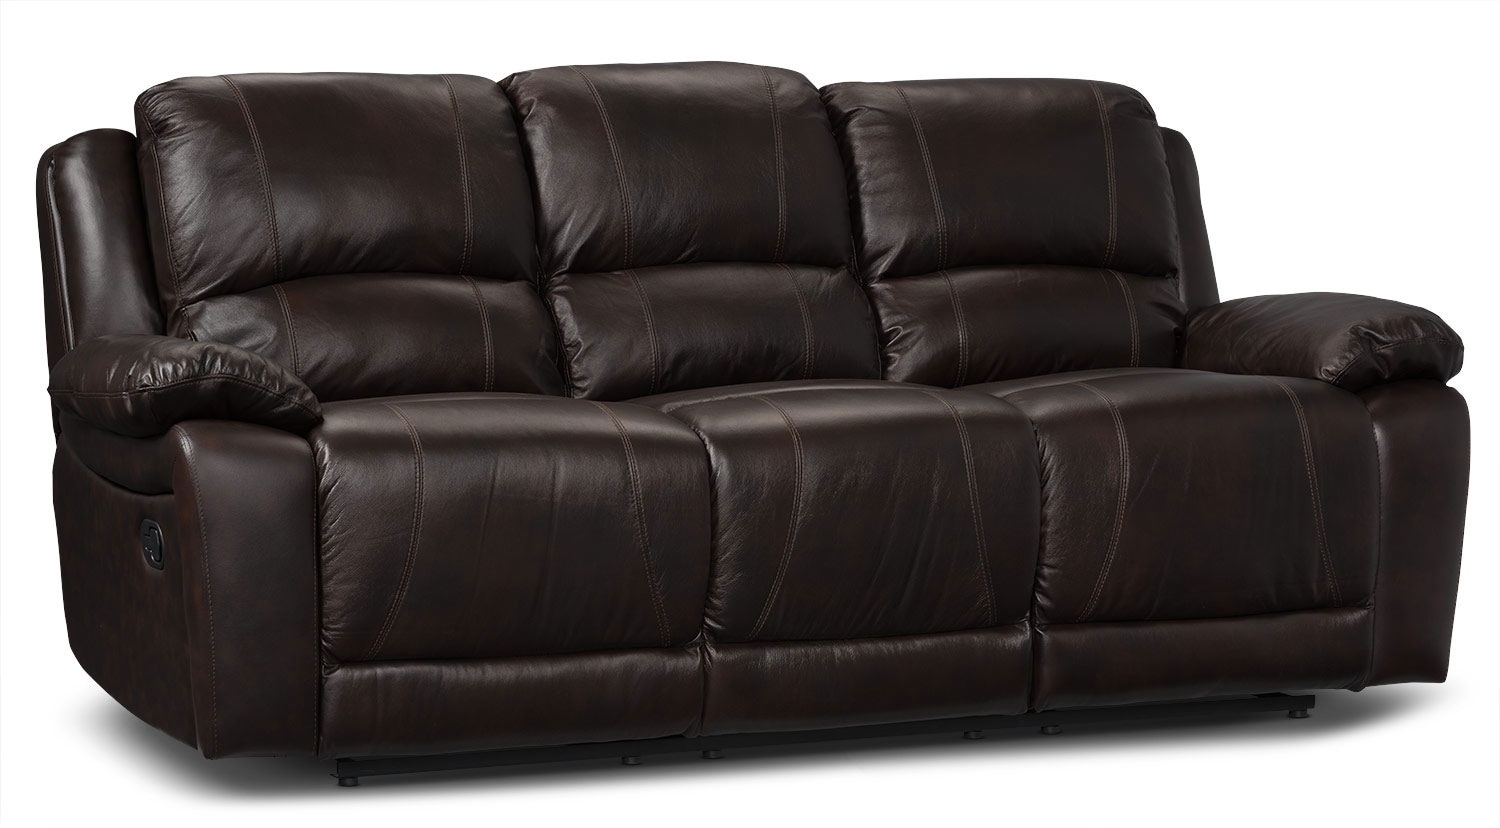 Marco genuine leather power reclining sofa chocolate for Leather reclining sofa